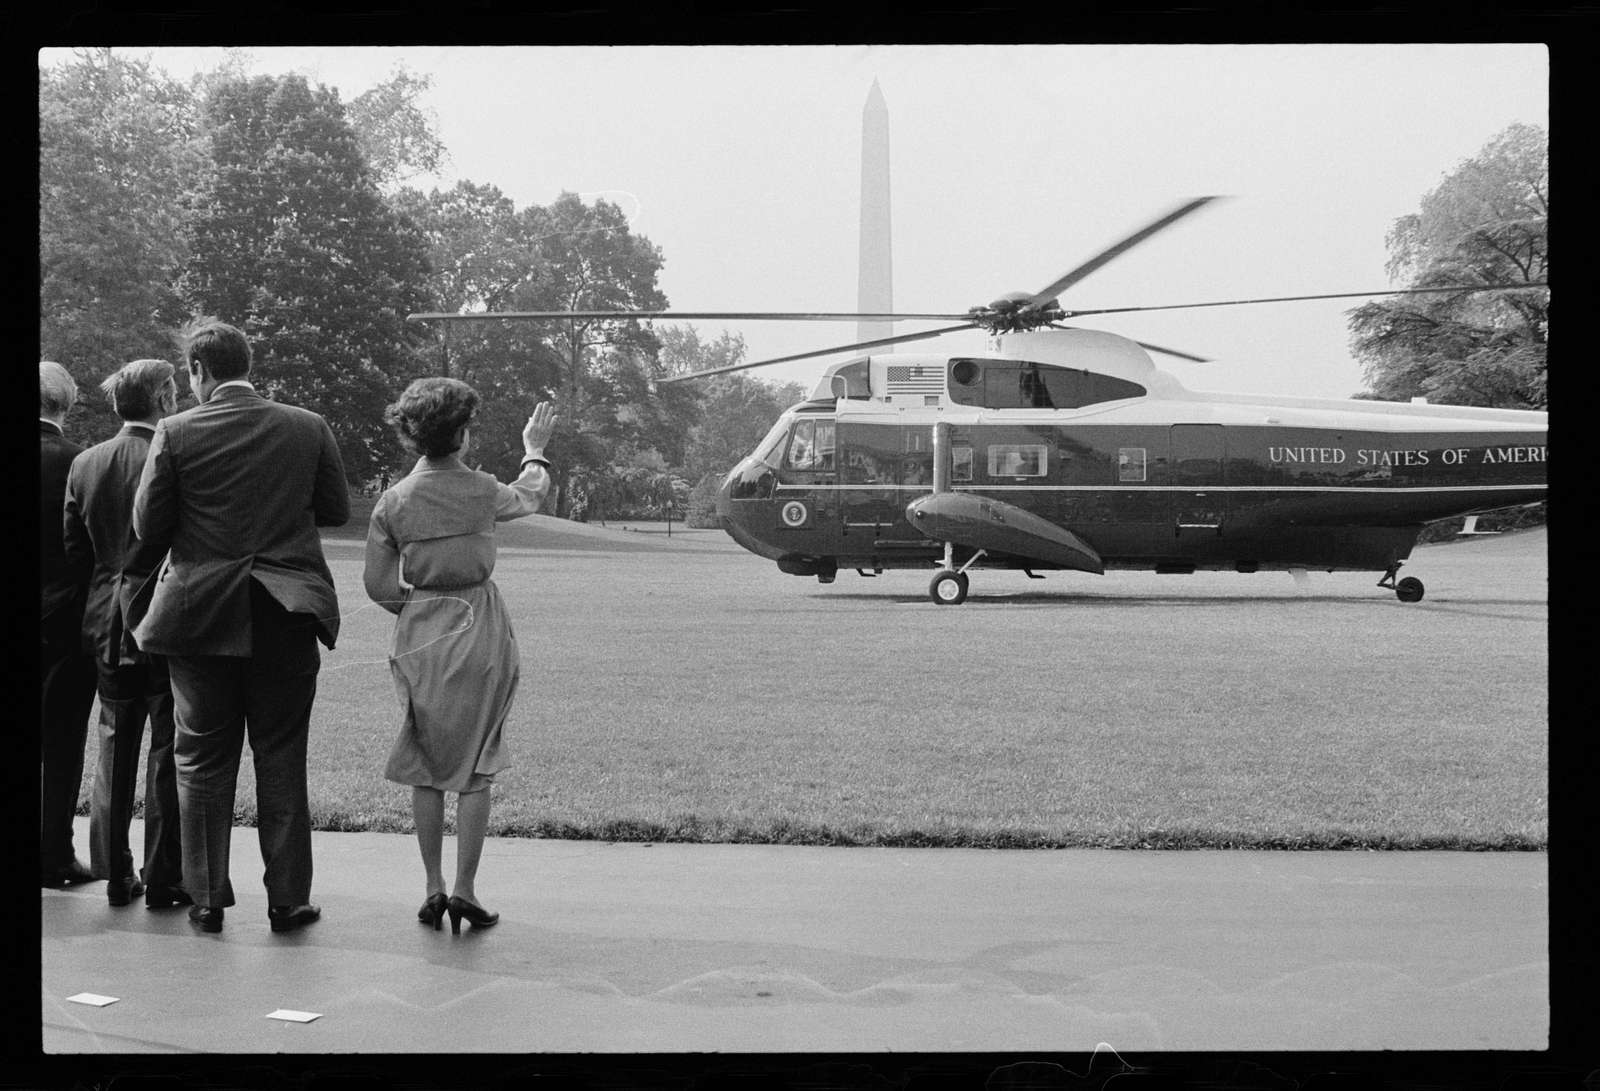 [Helicopter blades begin turning as First Lady Rosalynn Carter and unidentified men wave goodbye to President Jimmy Carter as he departs from the White House lawn, Washington, D.C.]